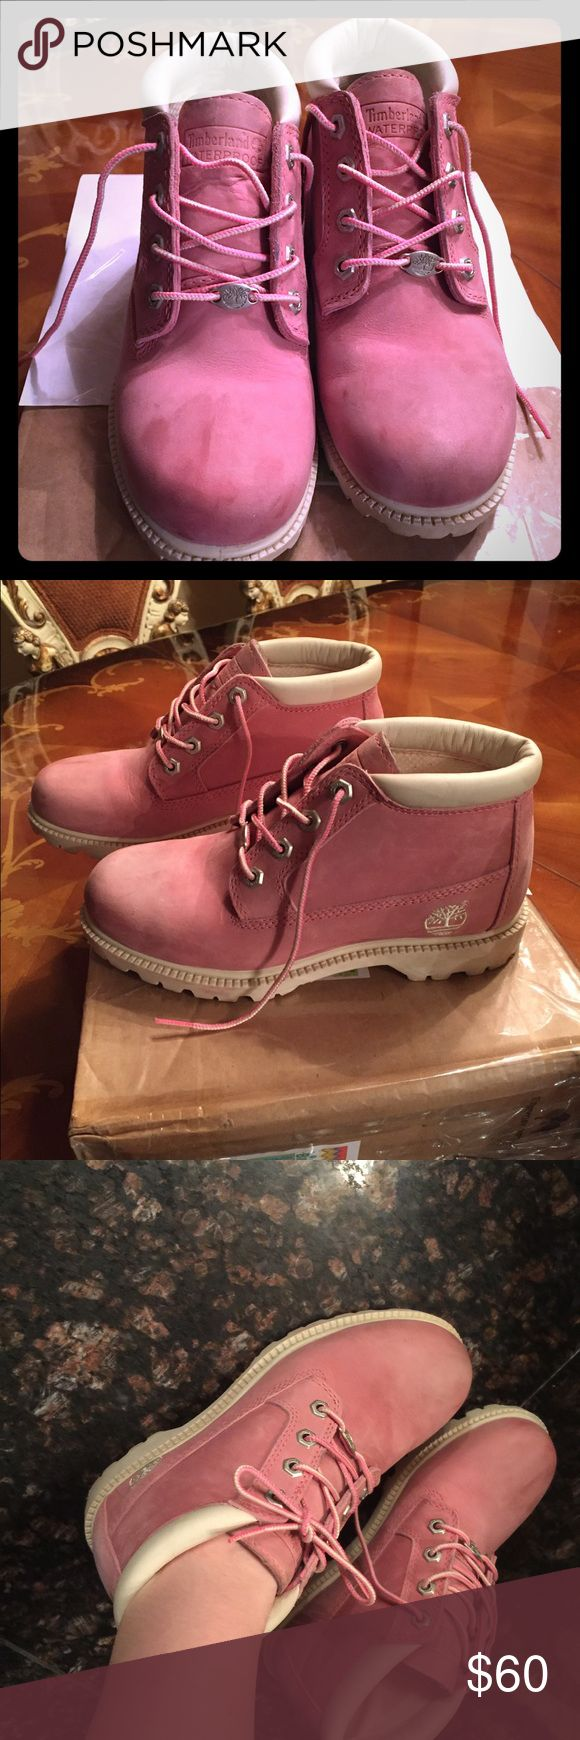 Pink and white Timberland boots preloved Preworn but still has life in them authentic 100% Timberland Shoes Lace Up Boots